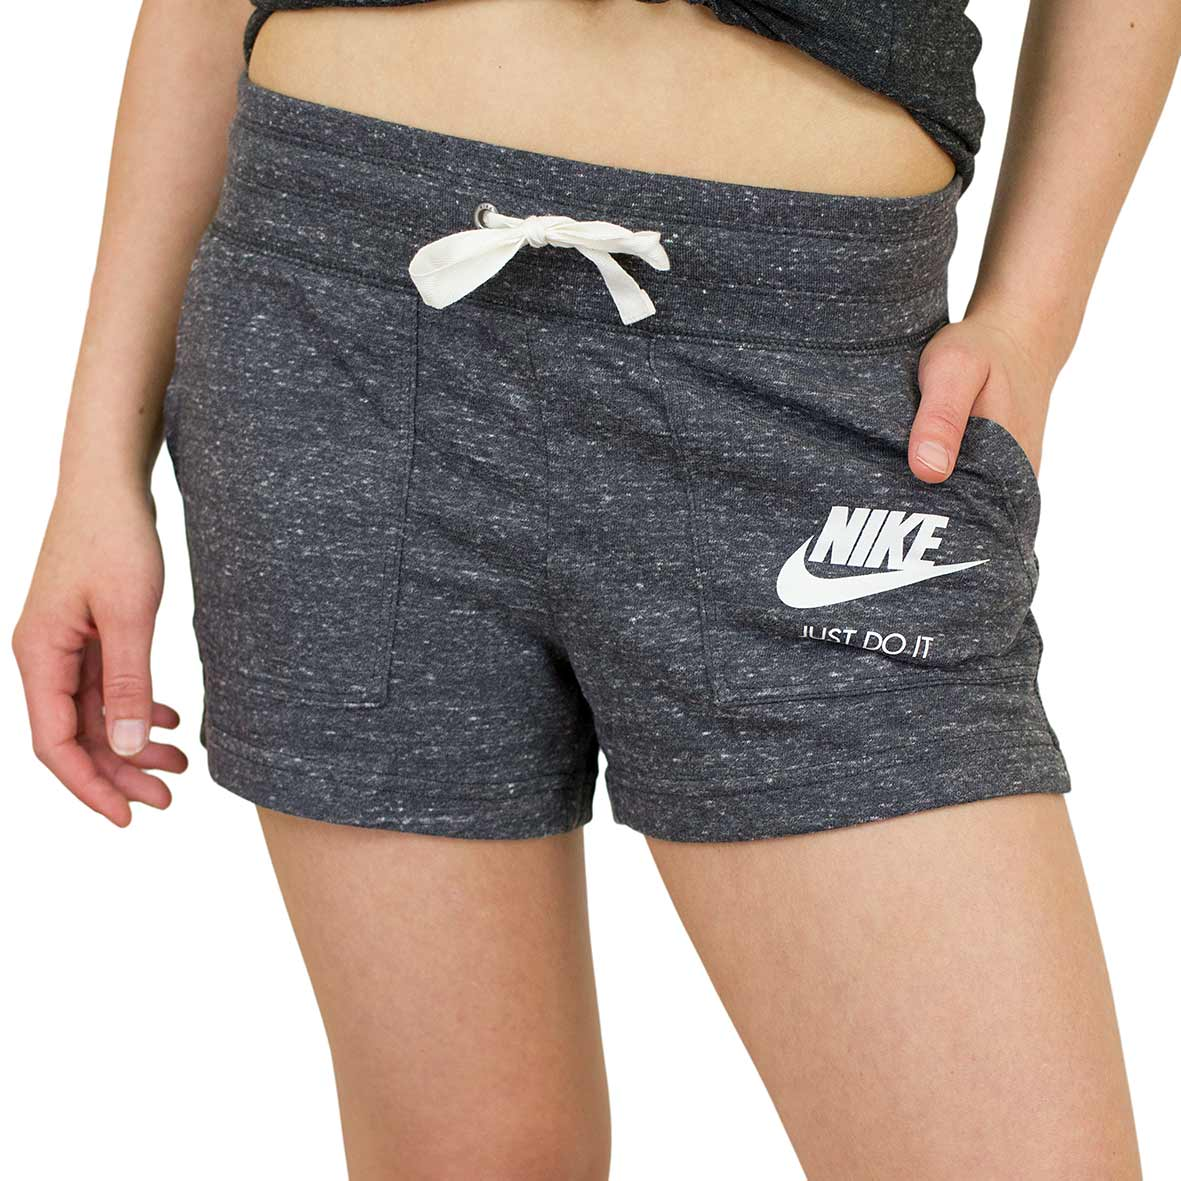 closer at lower price with check out ☆ Nike Damen Shorts Gym Vintage anthrazit - hier bestellen!